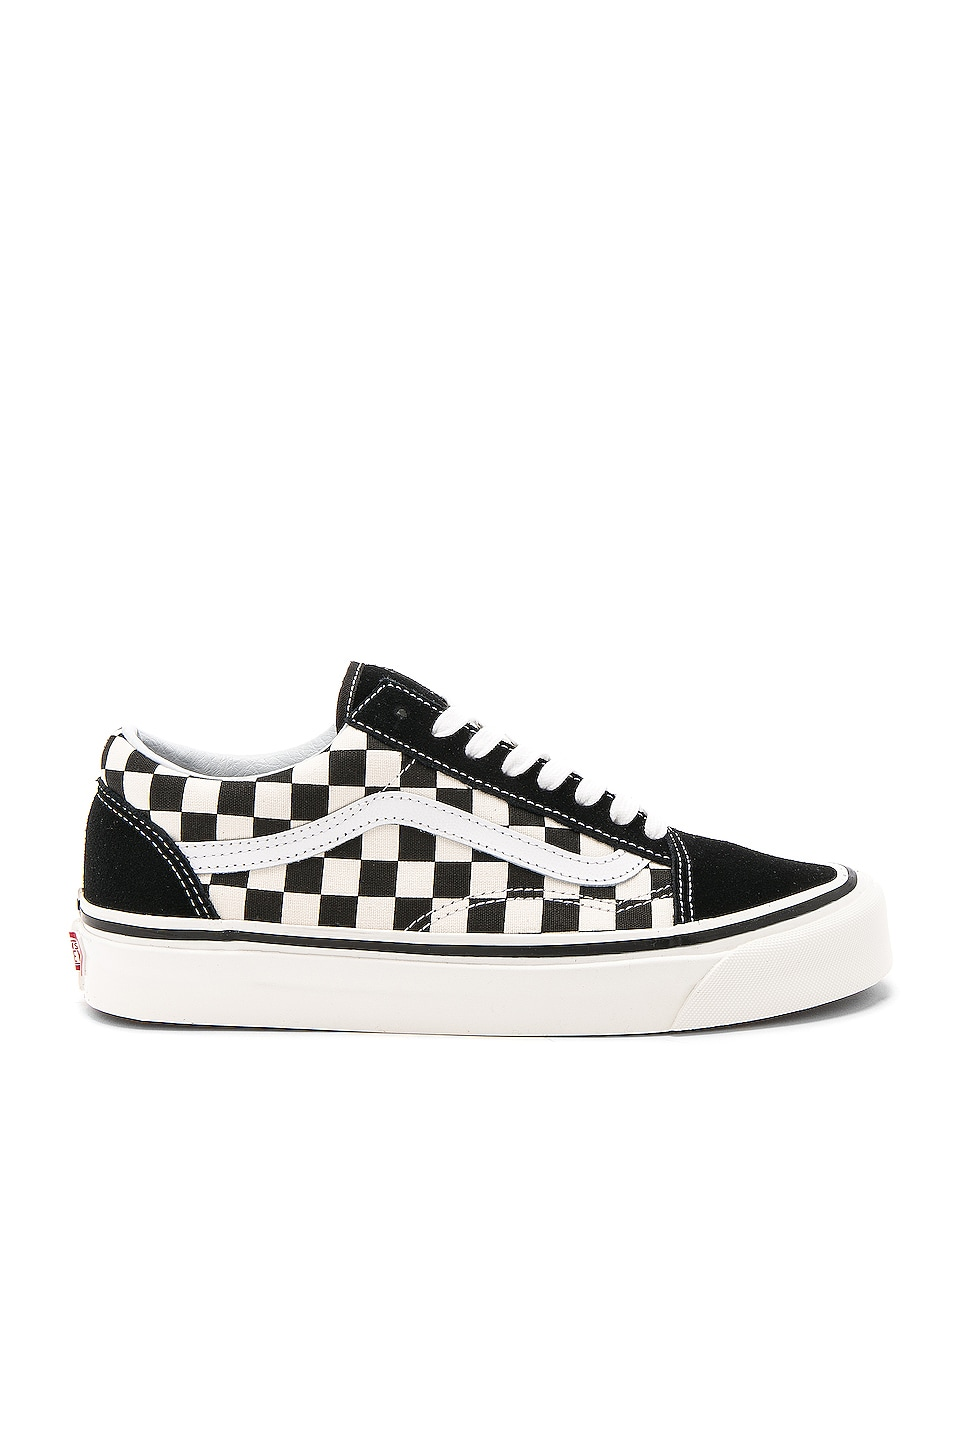 Vans Old Skool en Black & Check